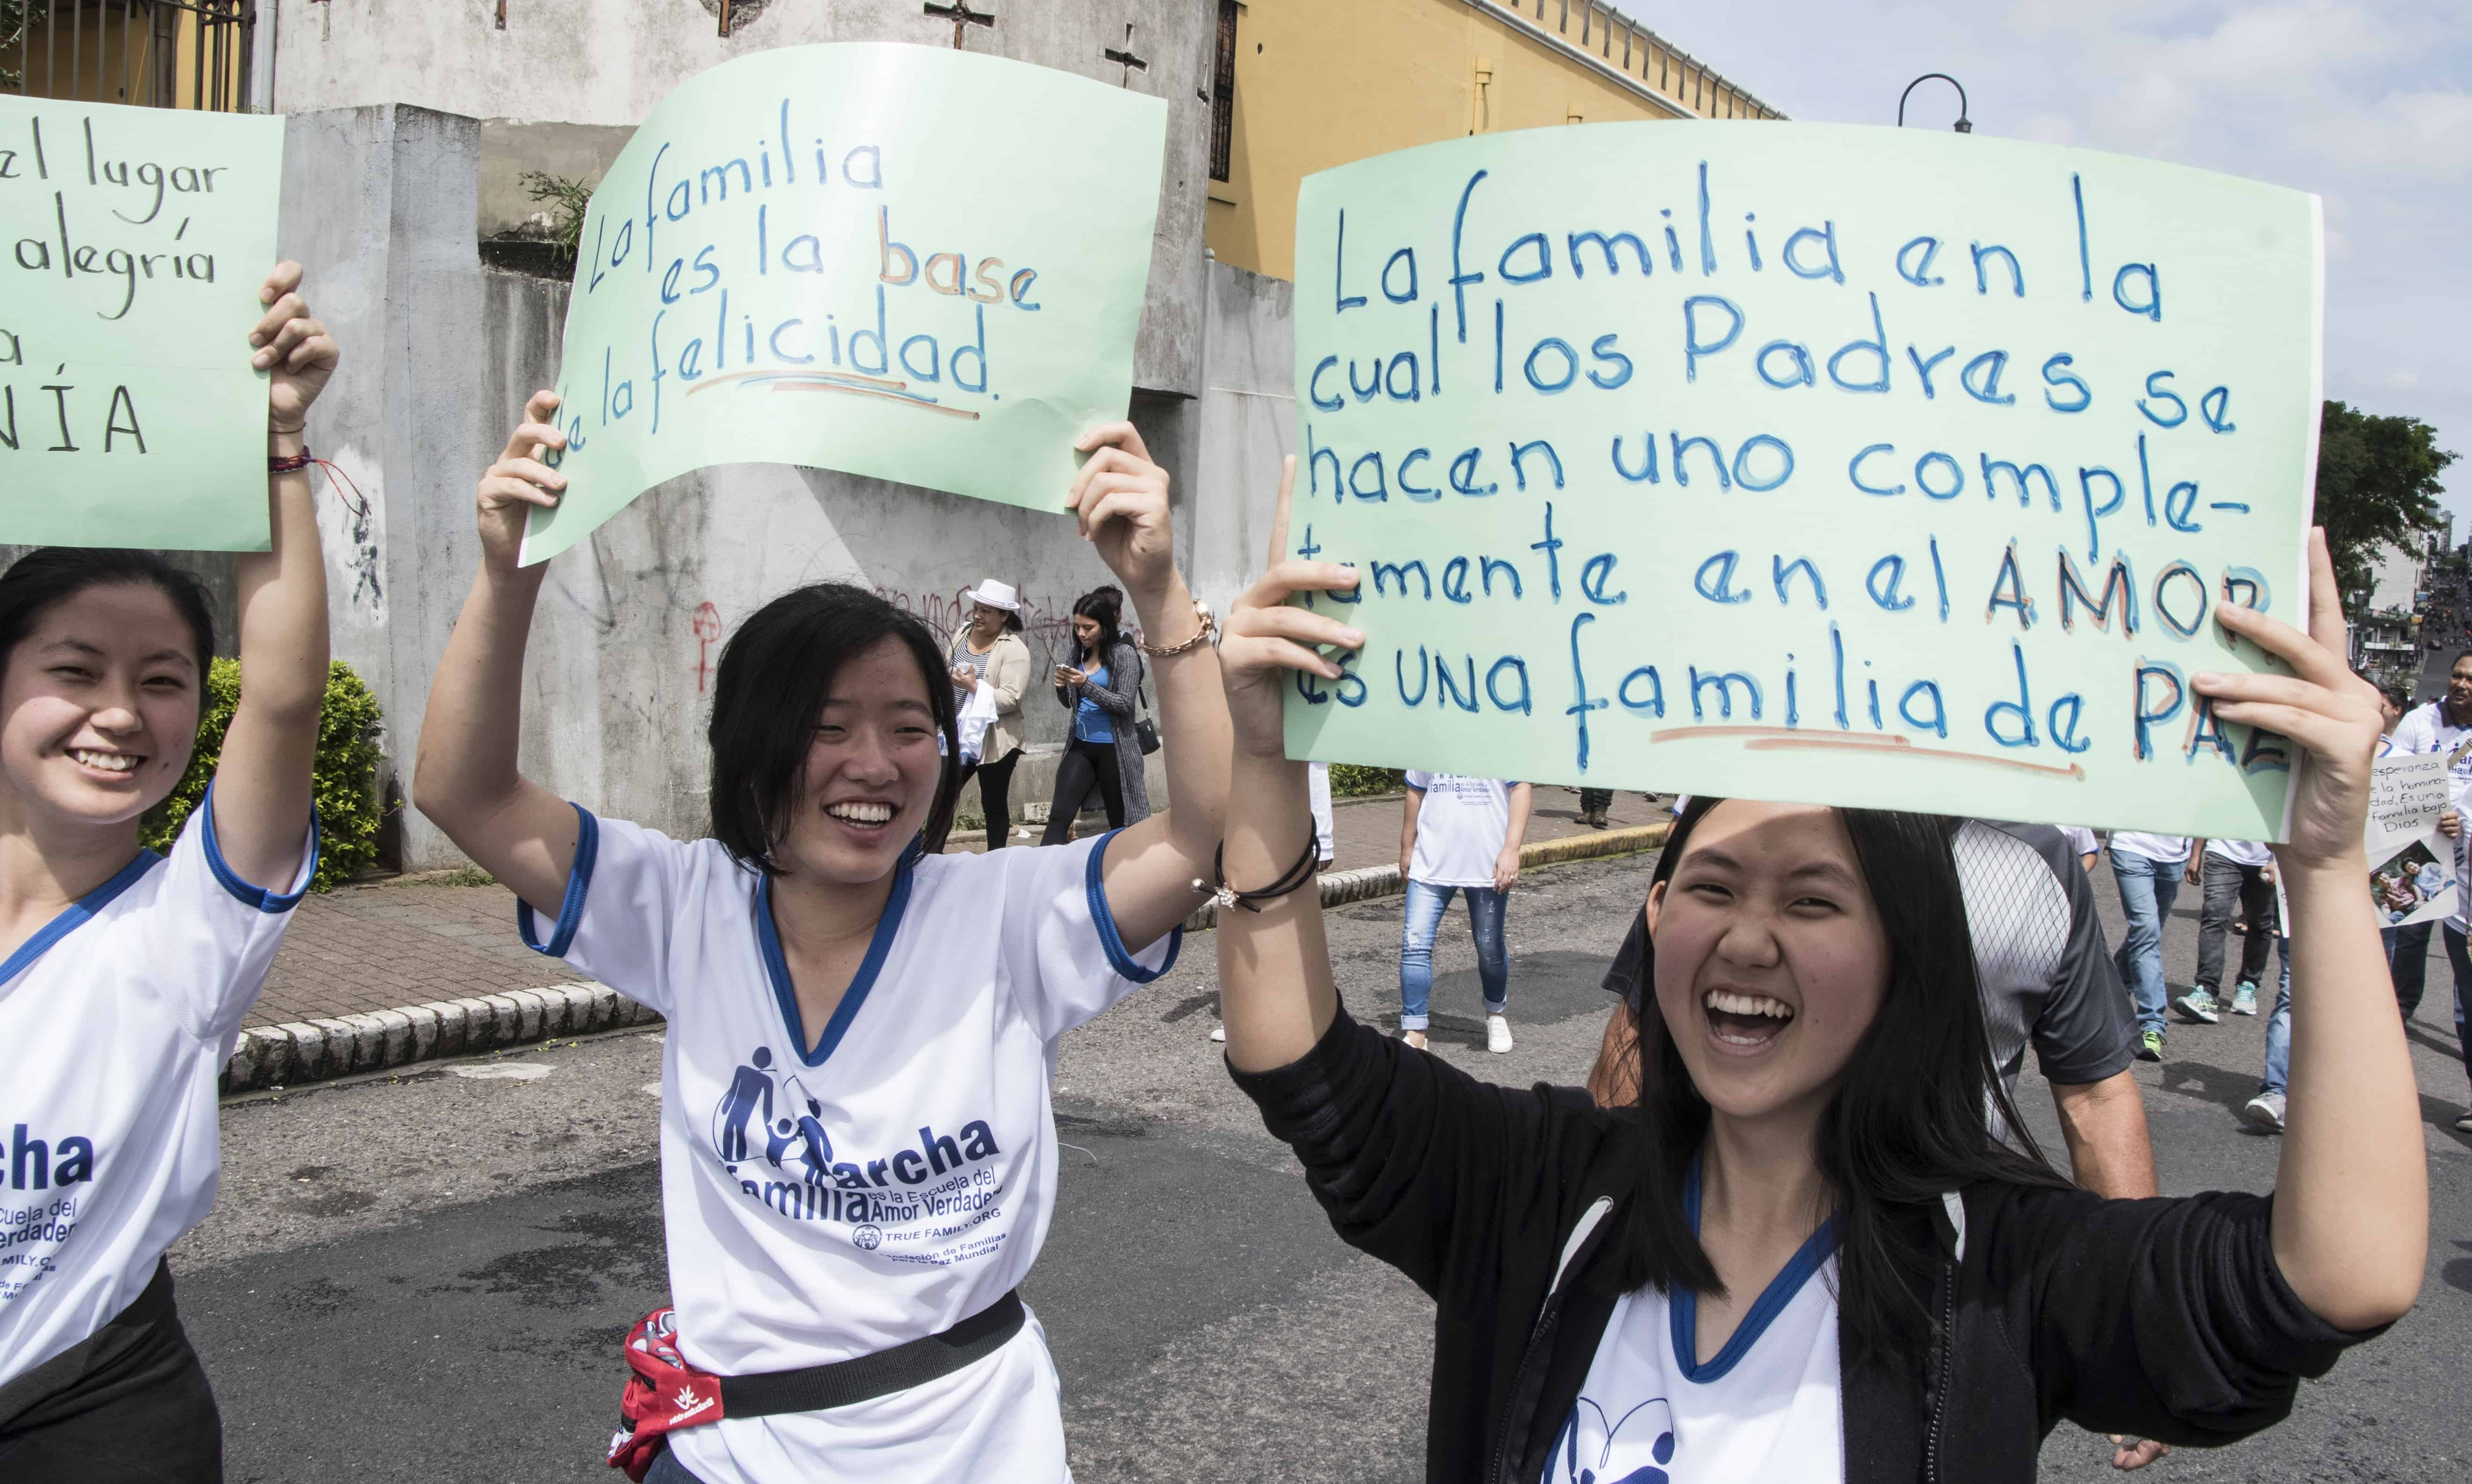 Women hold signs in favor of the traditional family during a march in San José, on July 15, 2018.